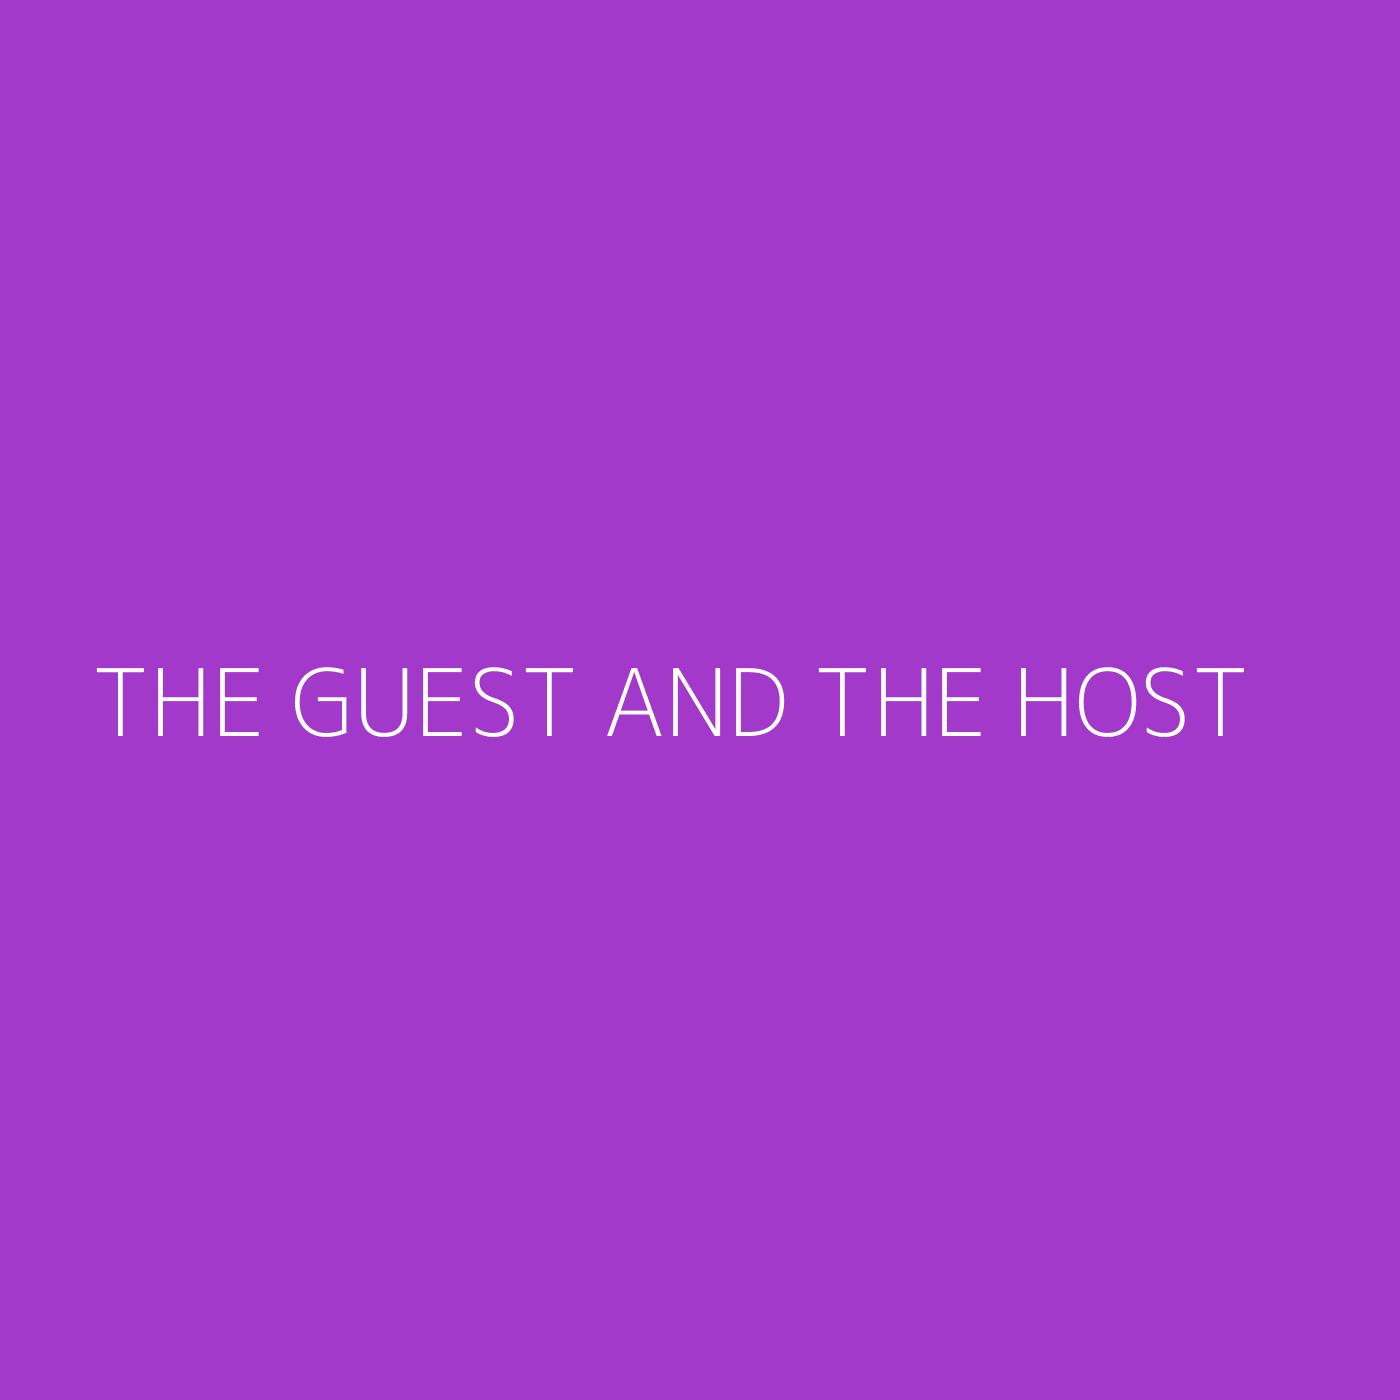 The Guest and the Host Playlist Artwork